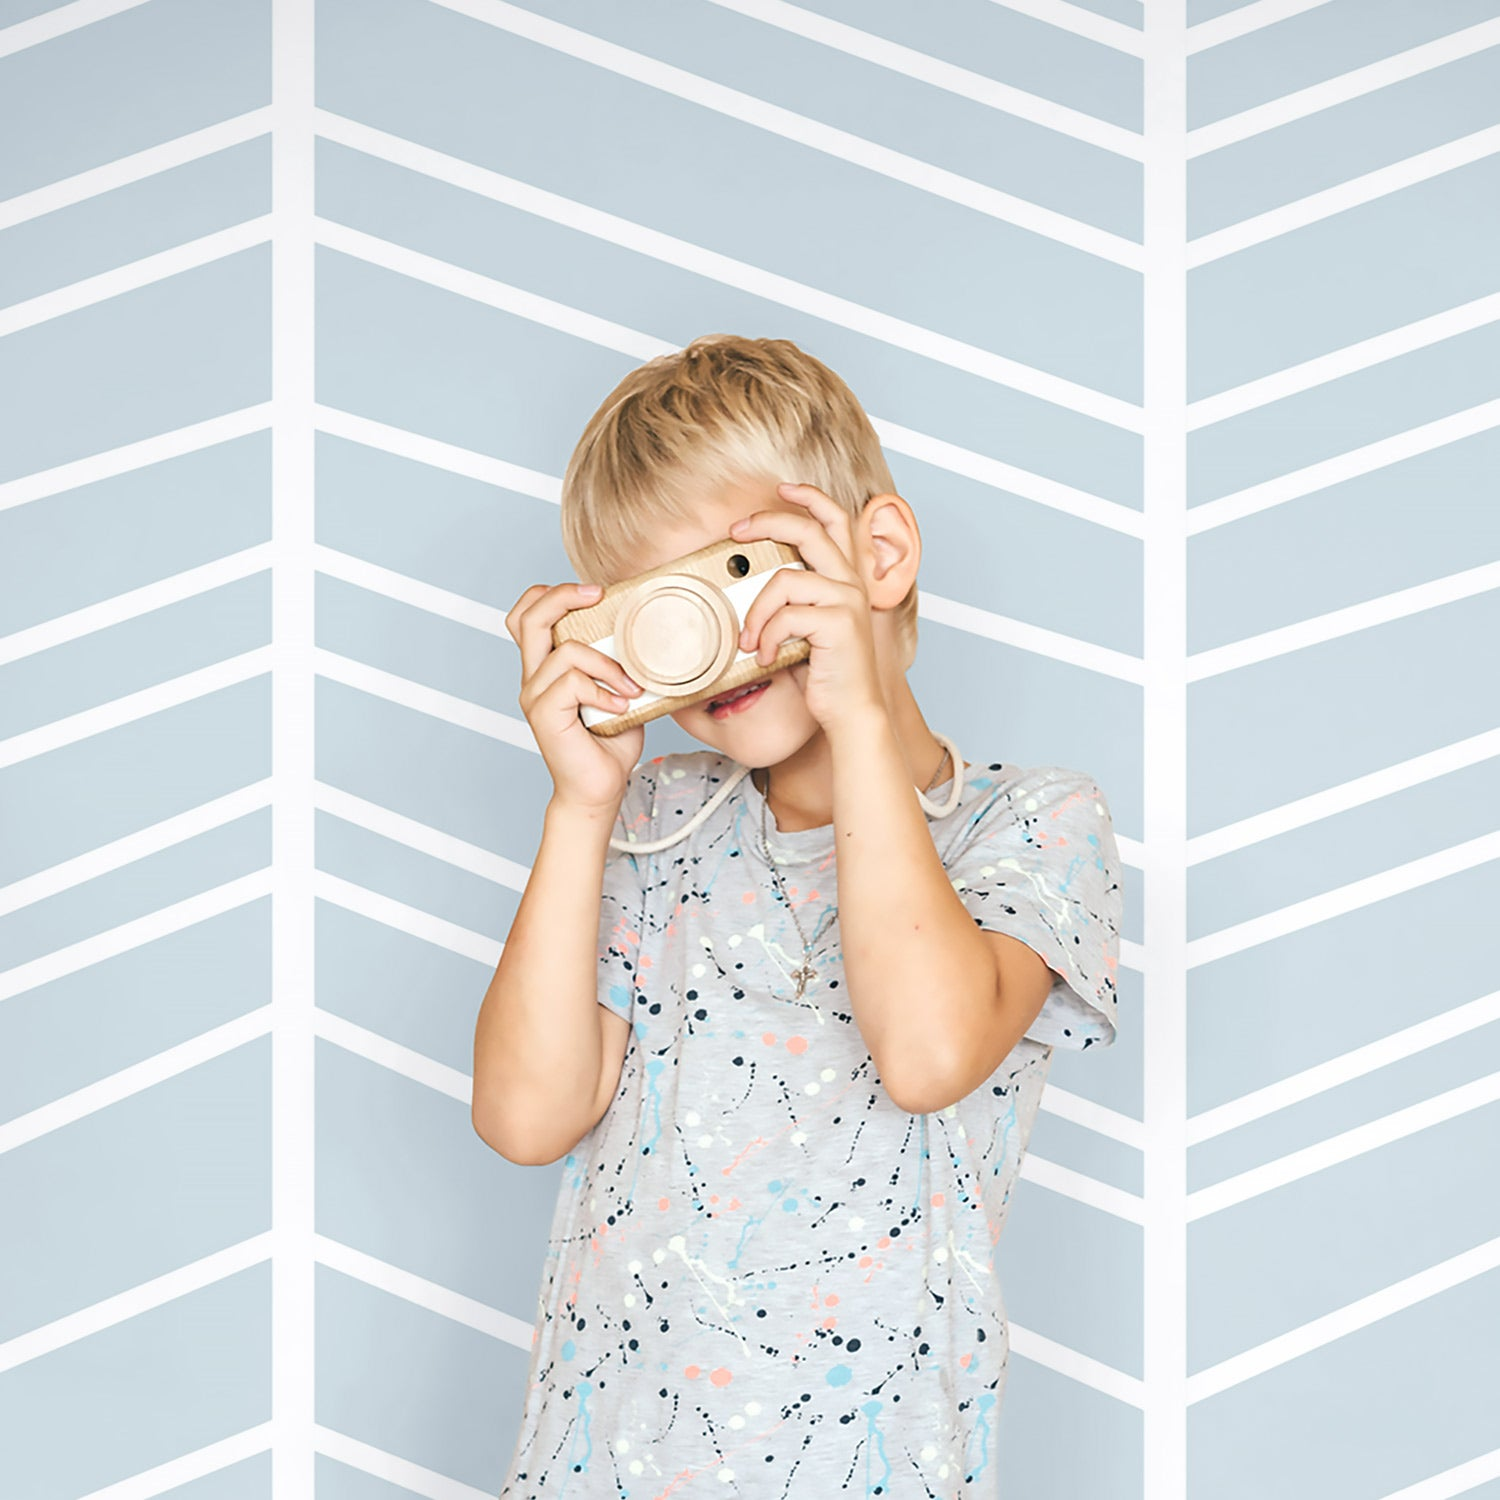 Light blue herringbone wallpaper and boy with toy camera